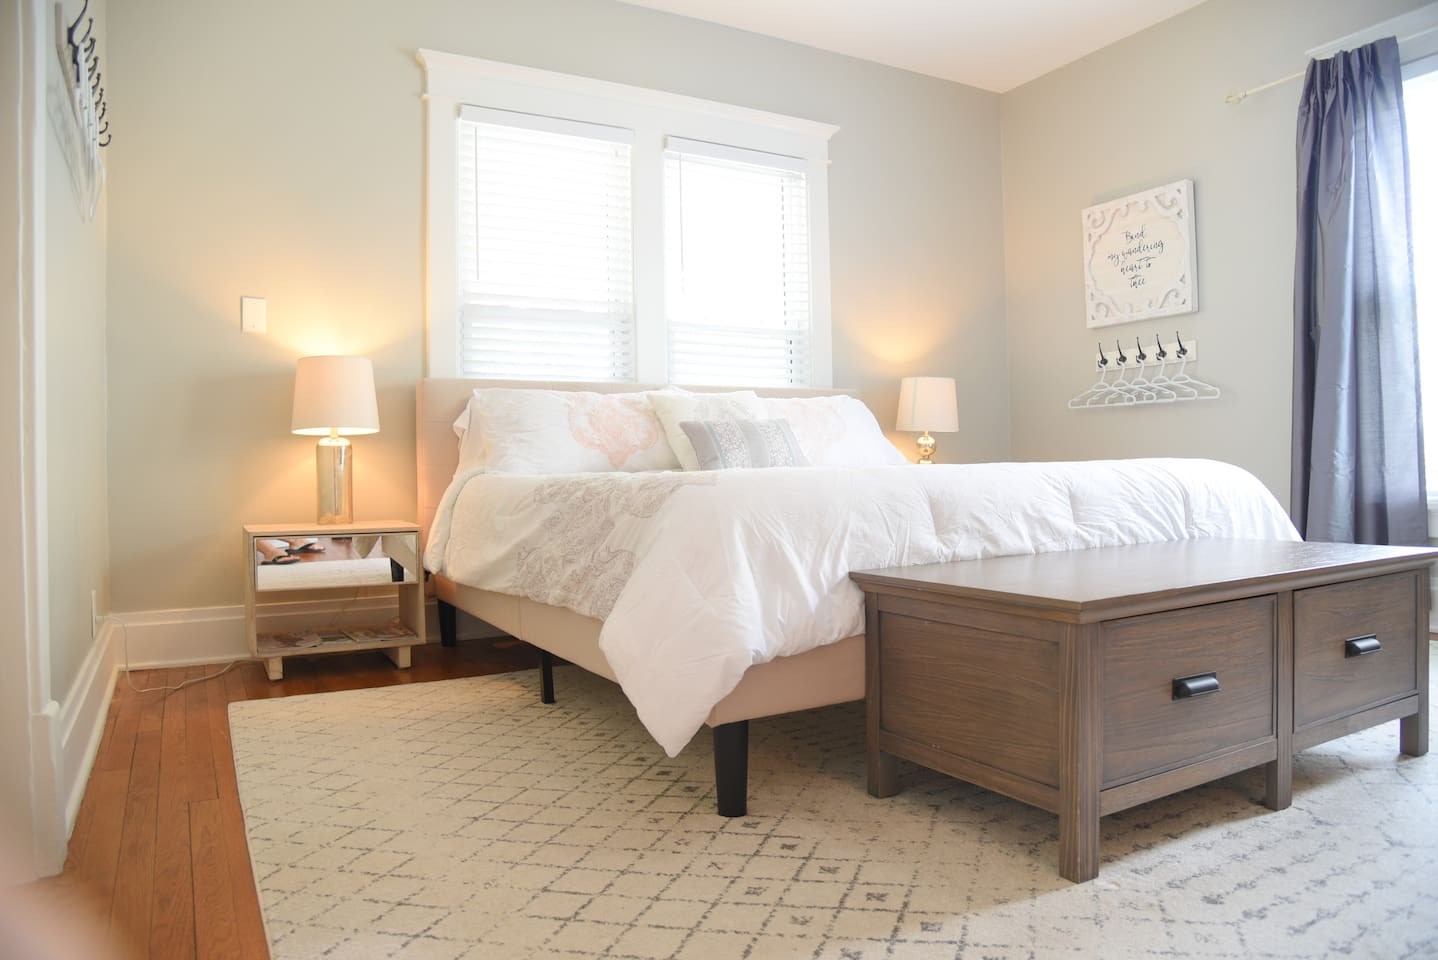 Beautiful Kingsize Master bedroom.  Our guests love the Barn door, decretive fireplace and the simple yet classic design of this space.  You will sleep so comfortabley on this high end mattress and linens.